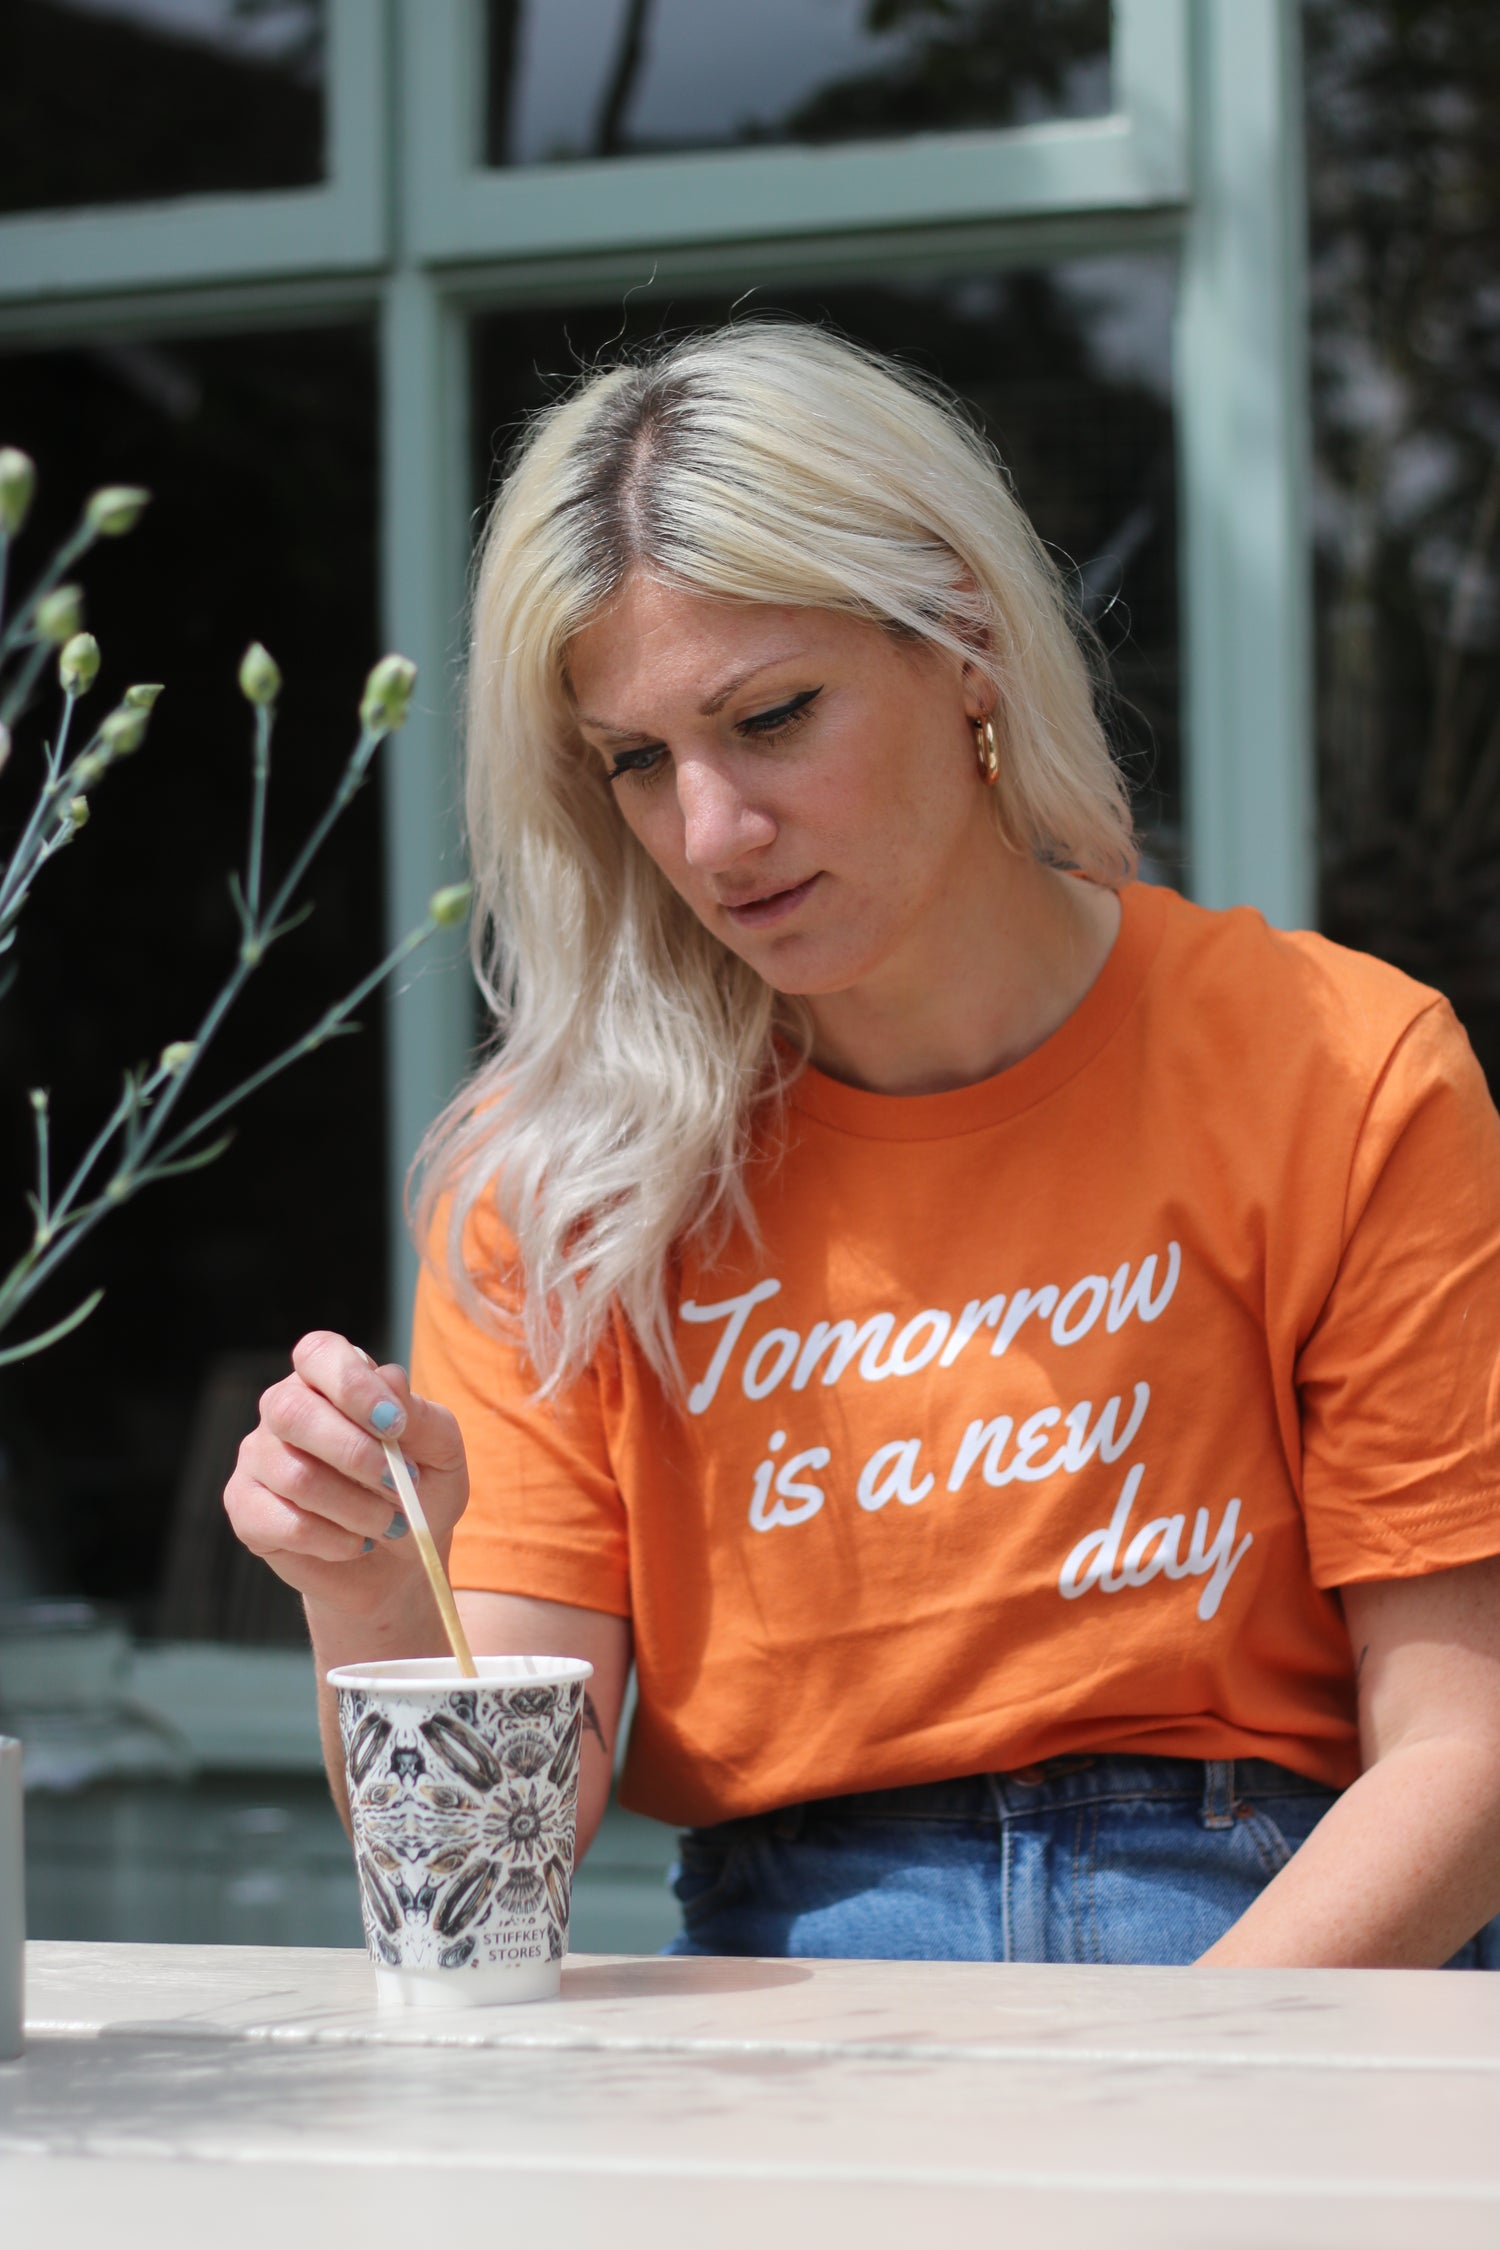 Image of Tomorrow is a new day tshirt